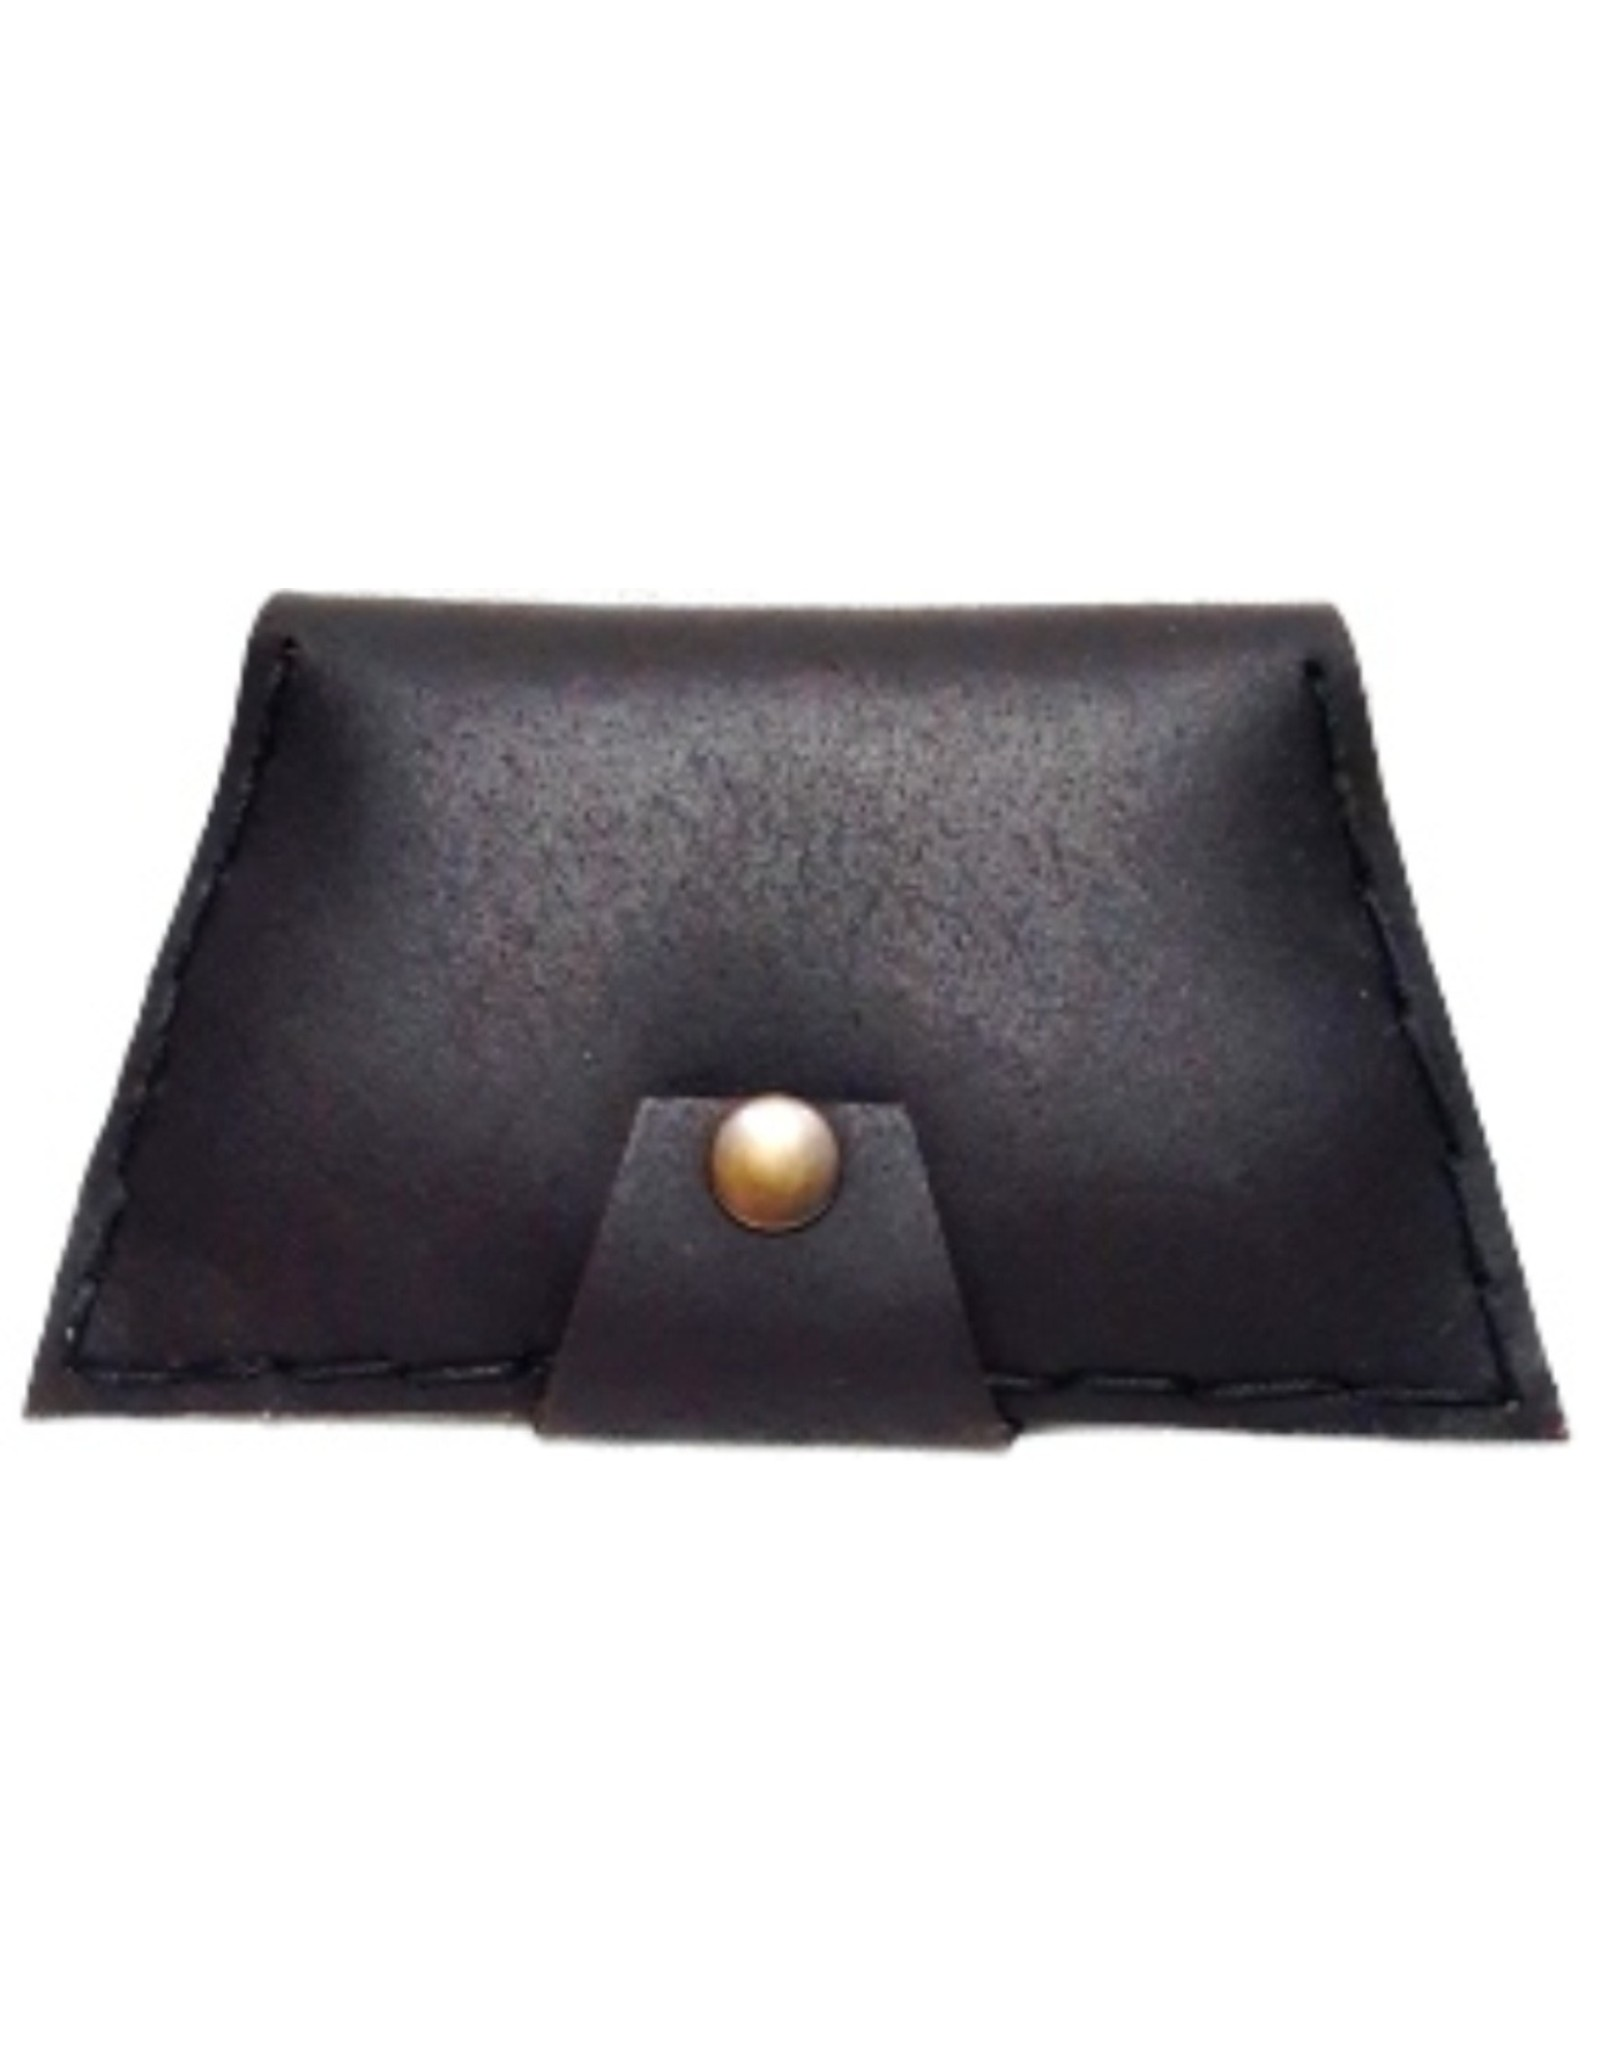 Antonio Duran Leather Wallets - Leather handmade coins wallet